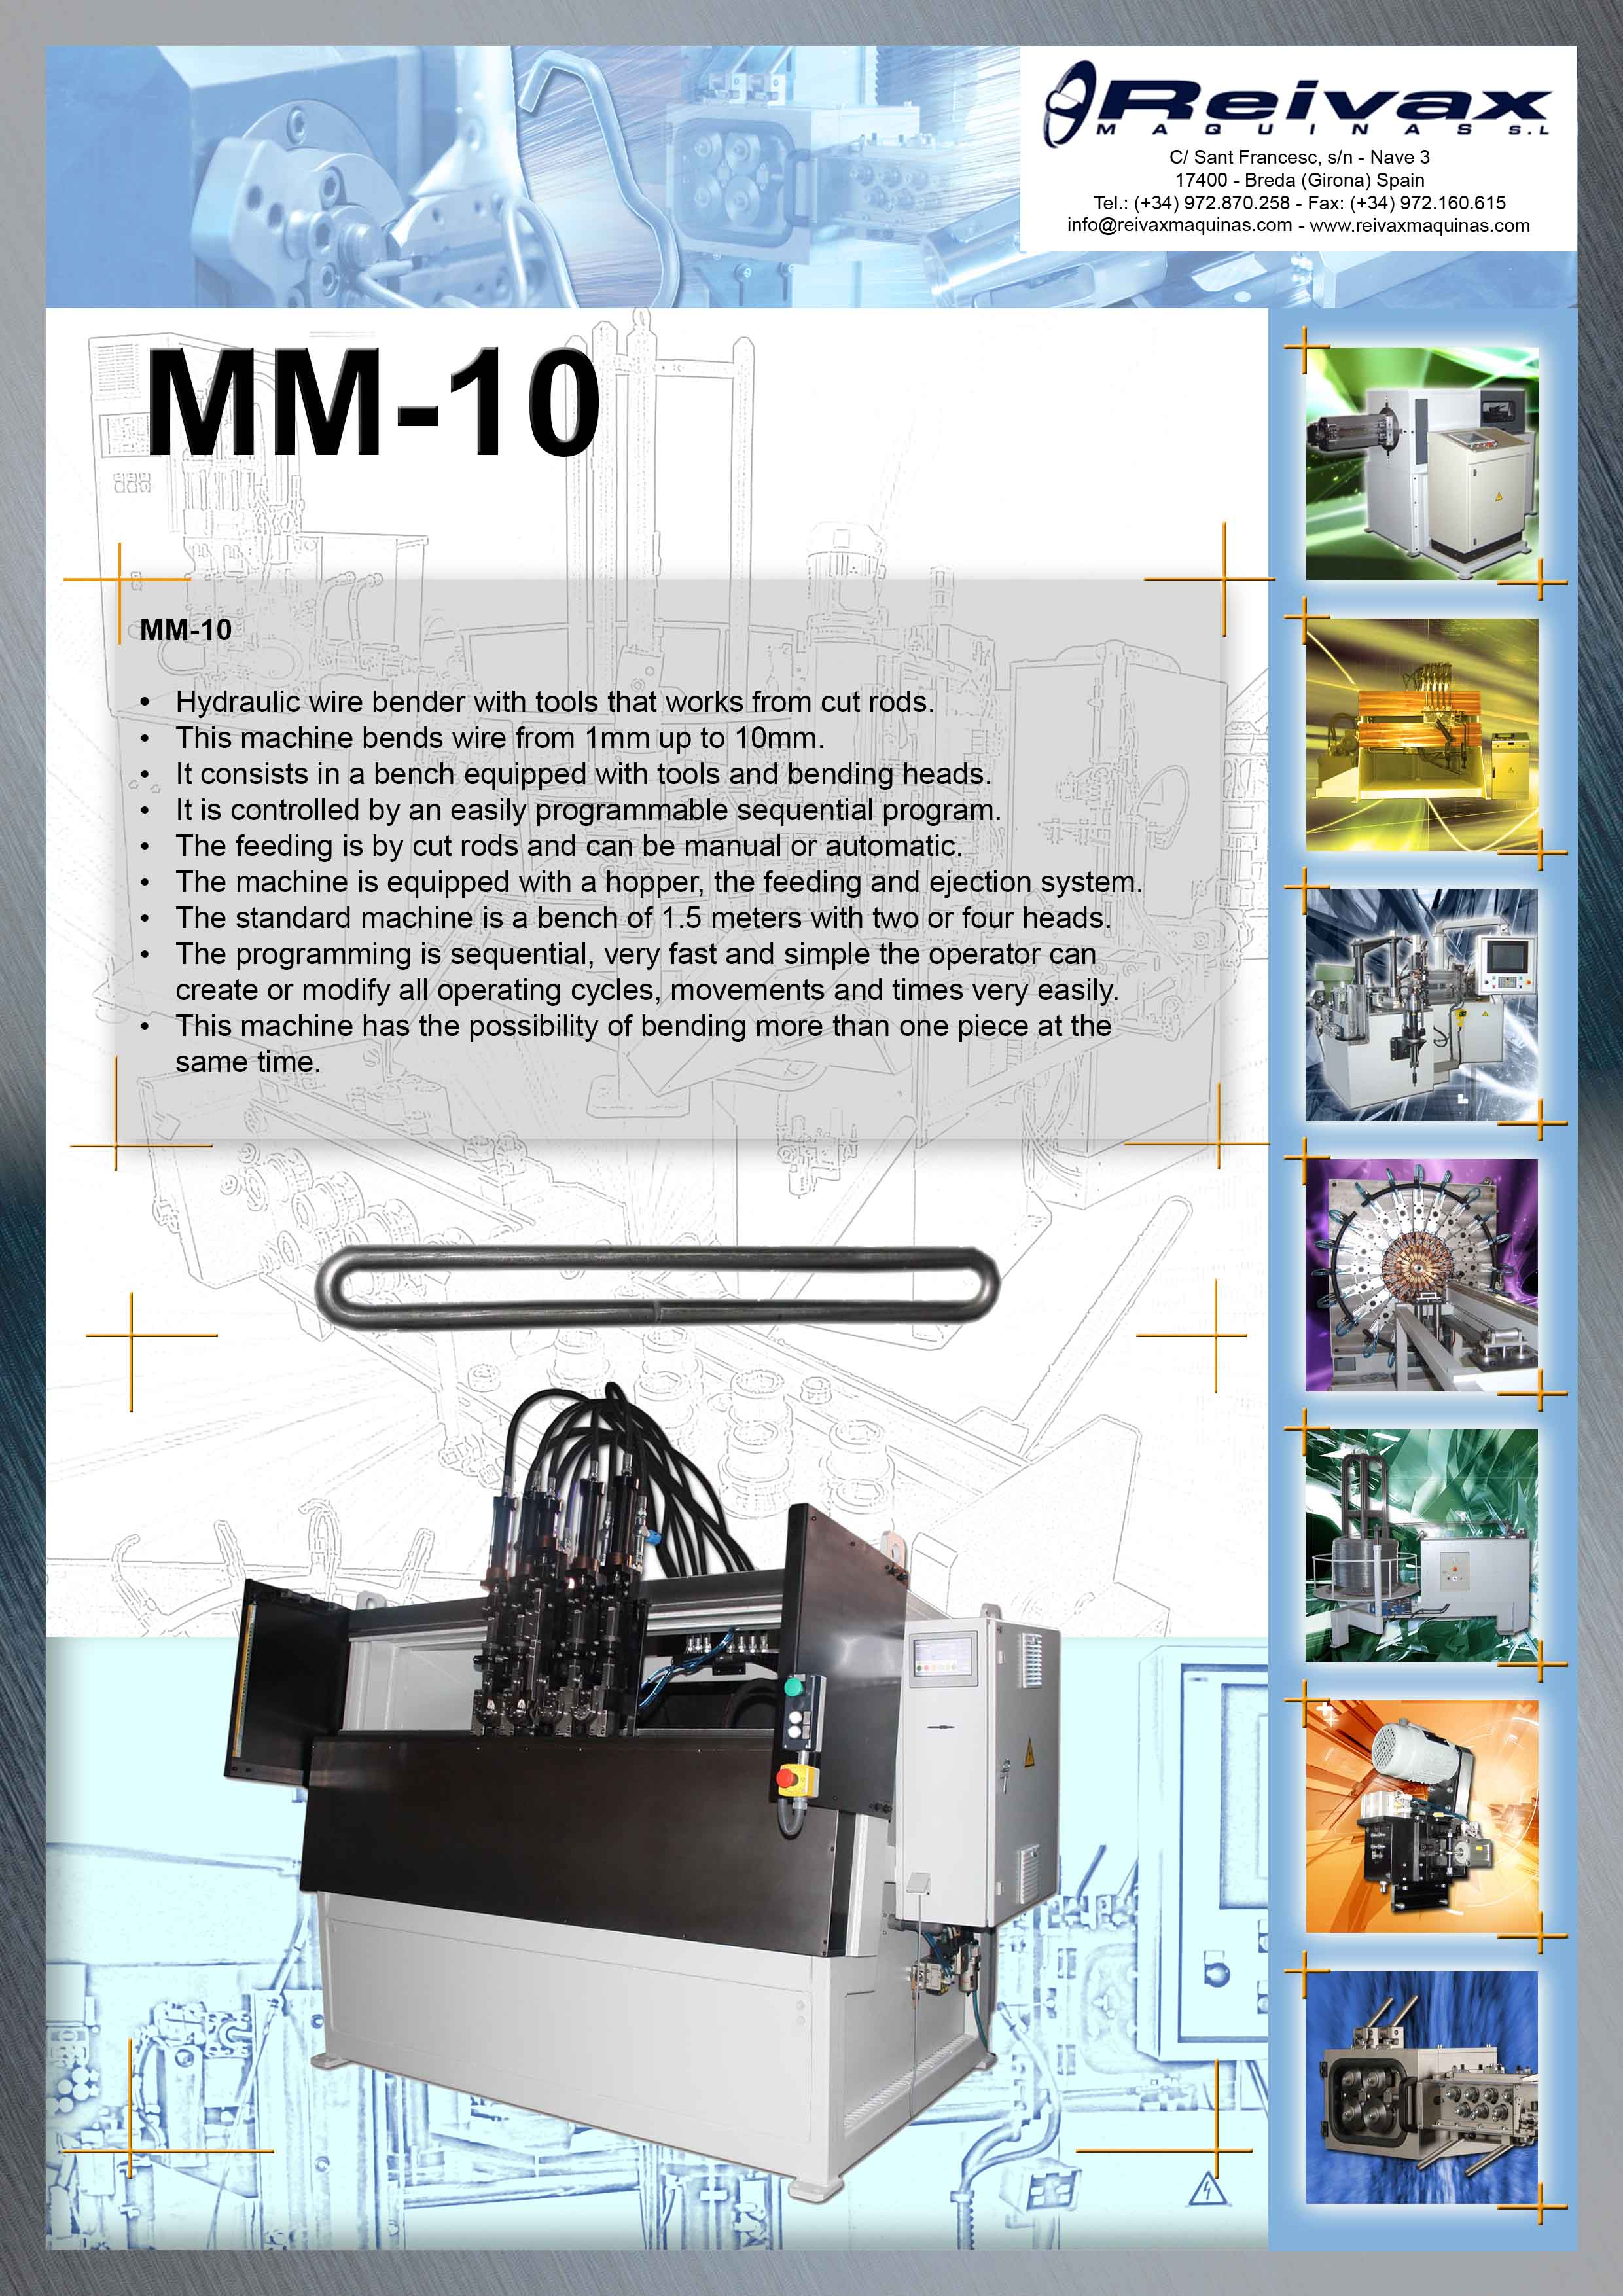 ReivaxMaquinas: MM-10 Manual machine for manufacturing frames or similar pieces.